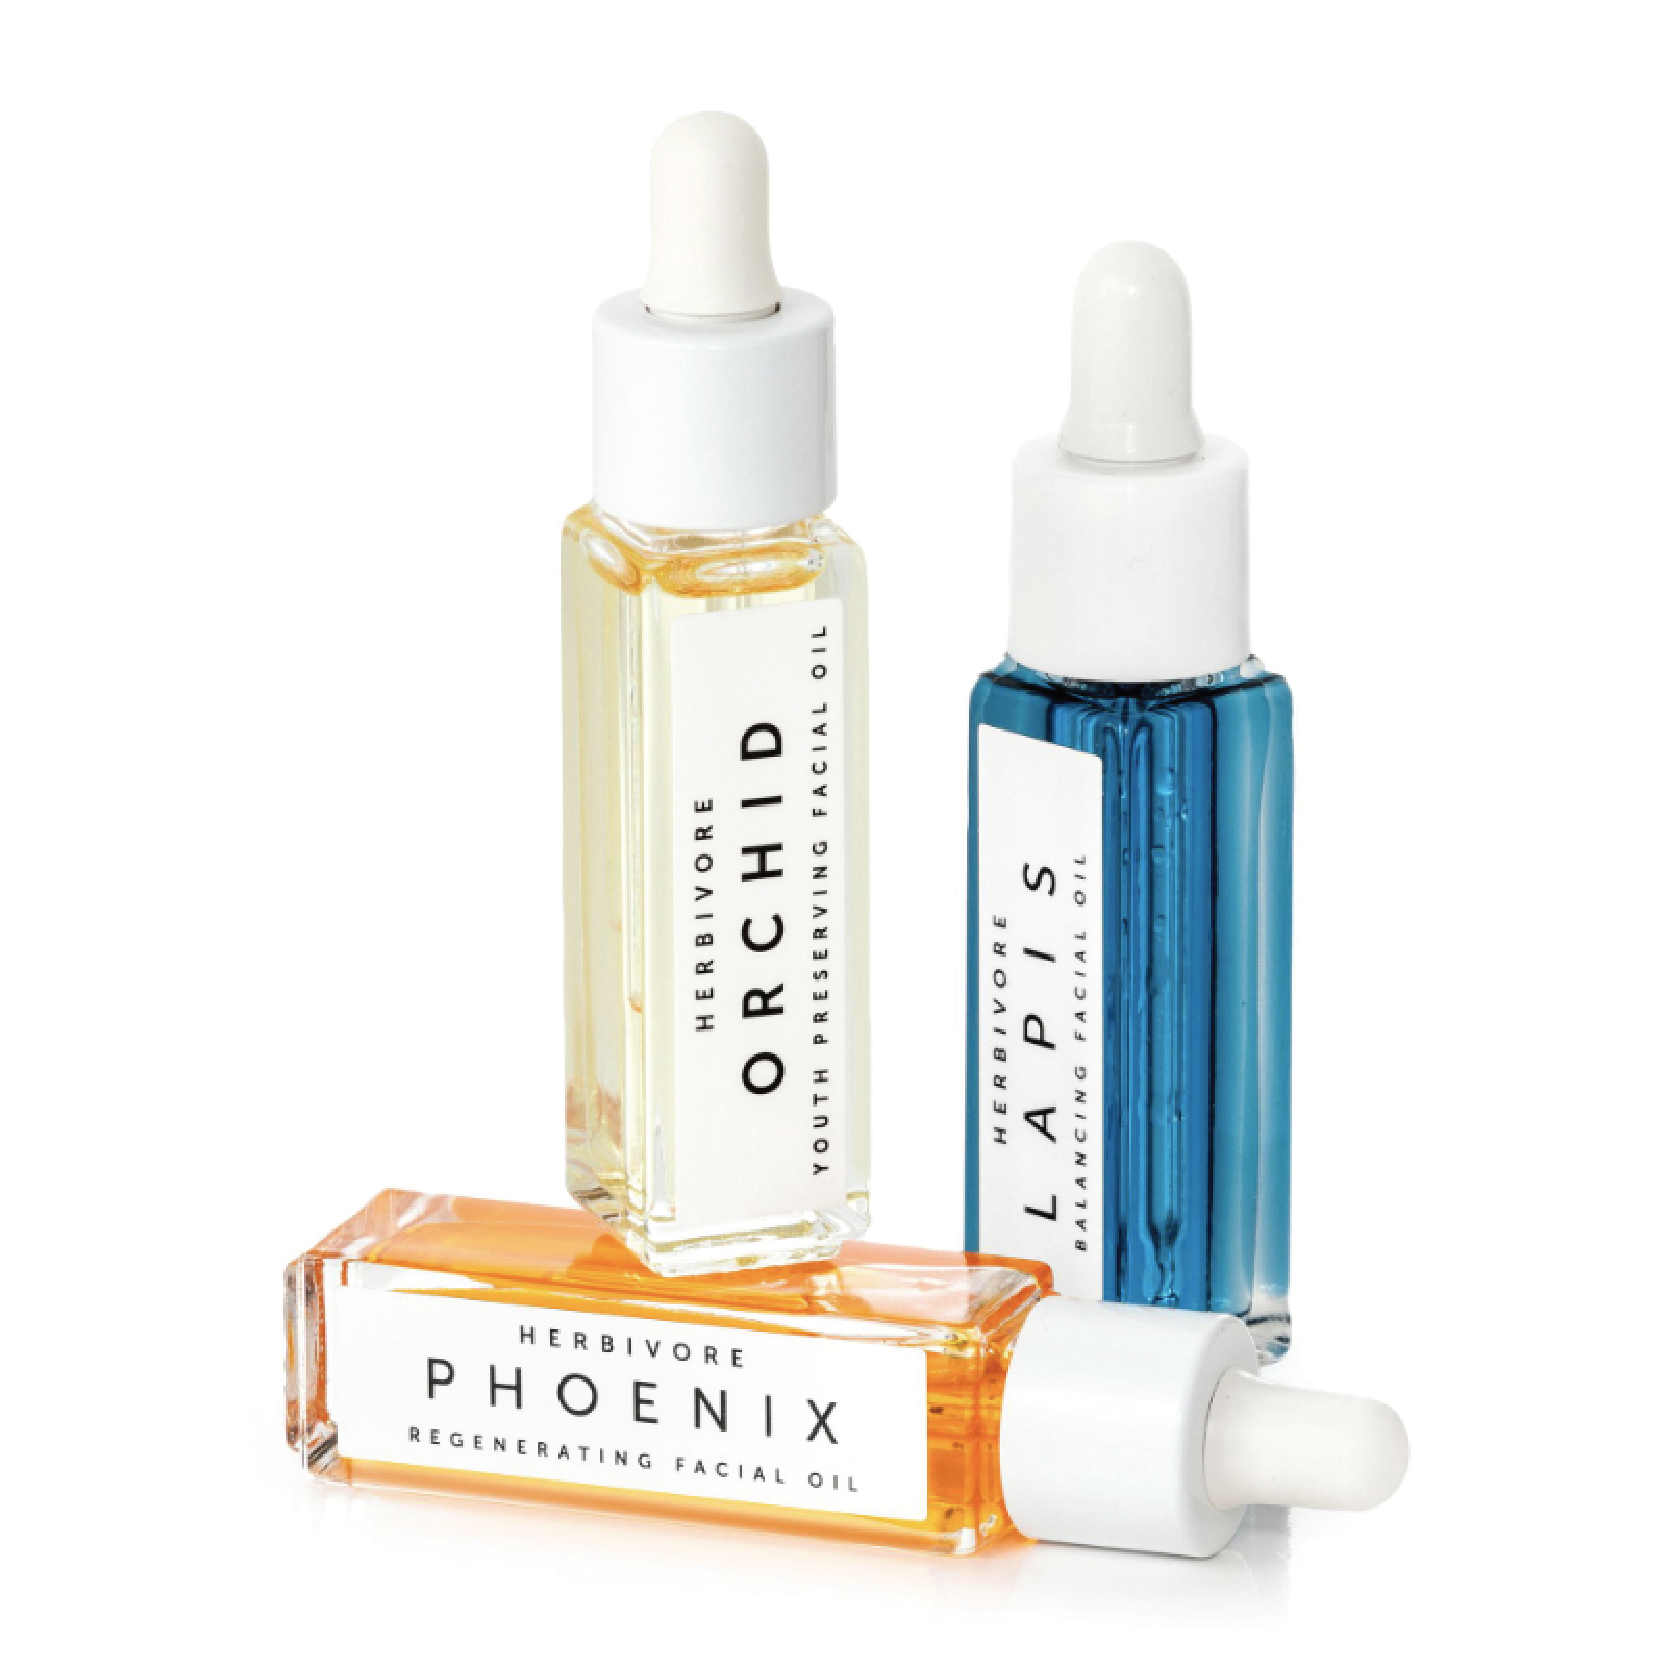 Herbivore Botanicals Mini Facial Oil Trio - $29 at Herbivore BotanicalsThese are the prettiest vials of oil ever! Herbivore is another brand that has super clean ingredients and this is an awesome way to introduce someone to a new indie brand.